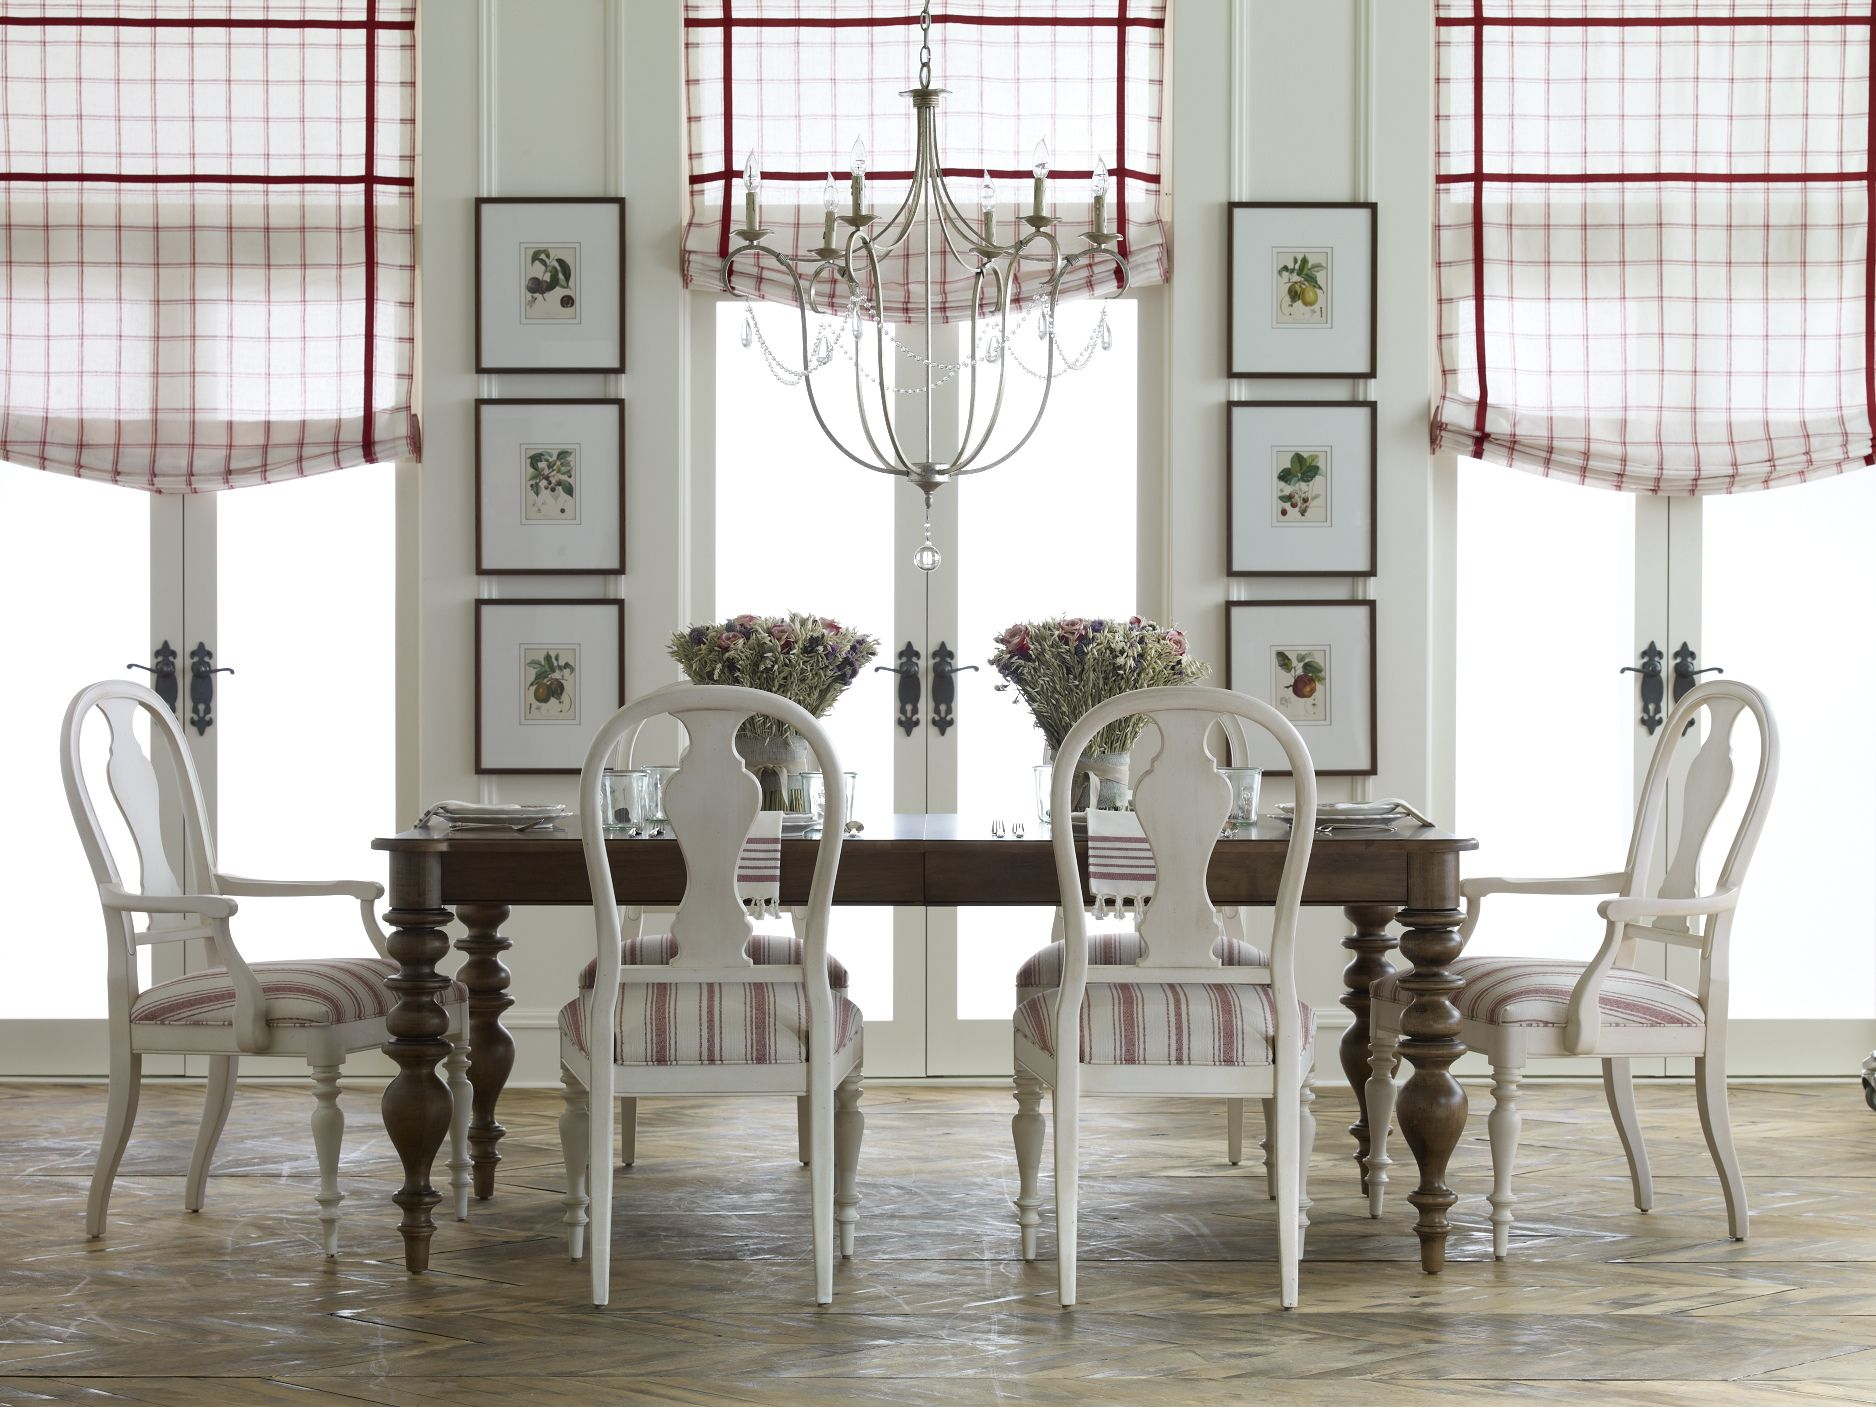 Beautiful love the the table and chairs love the backdropstylish